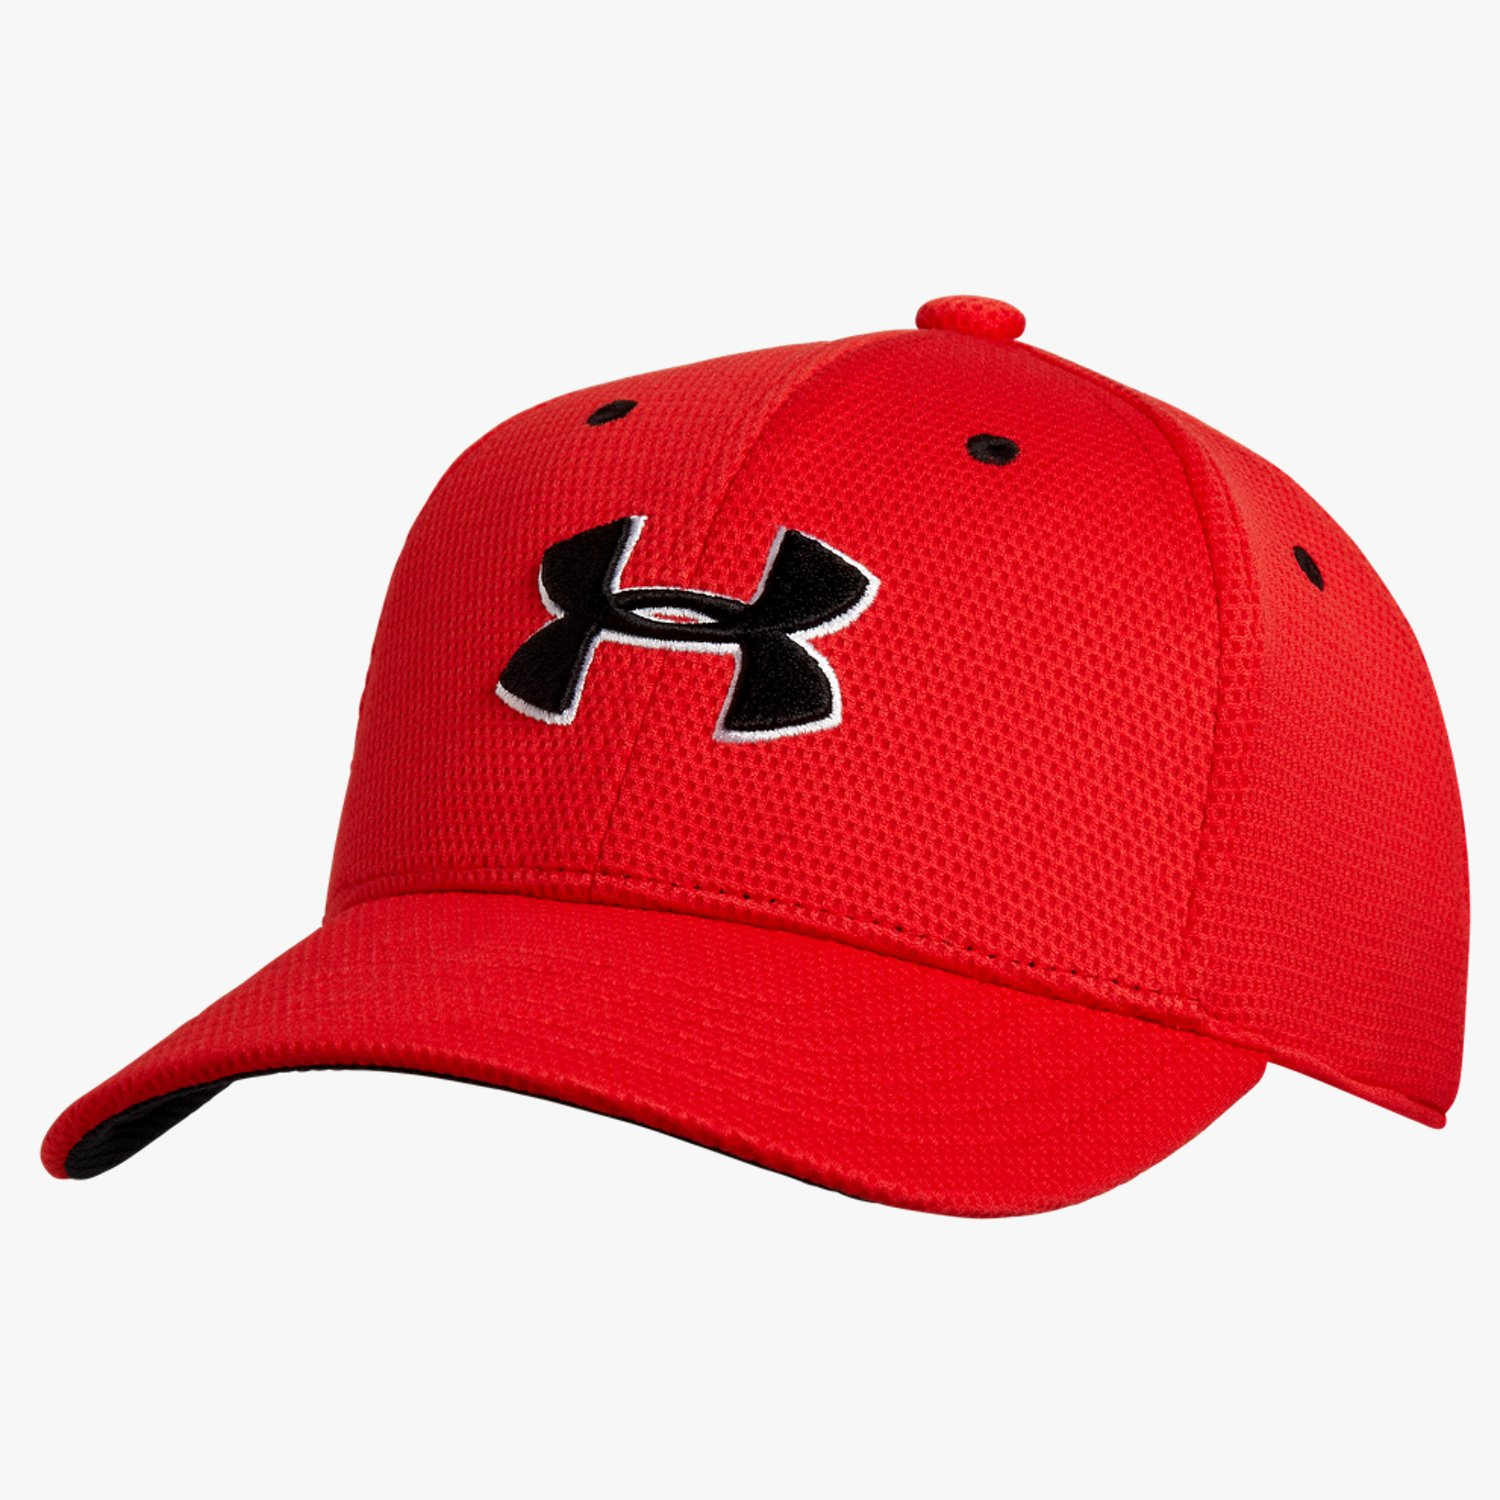 Under Armour Jungen Stretchkappe UA Blitzing II Risk Red/Black-30